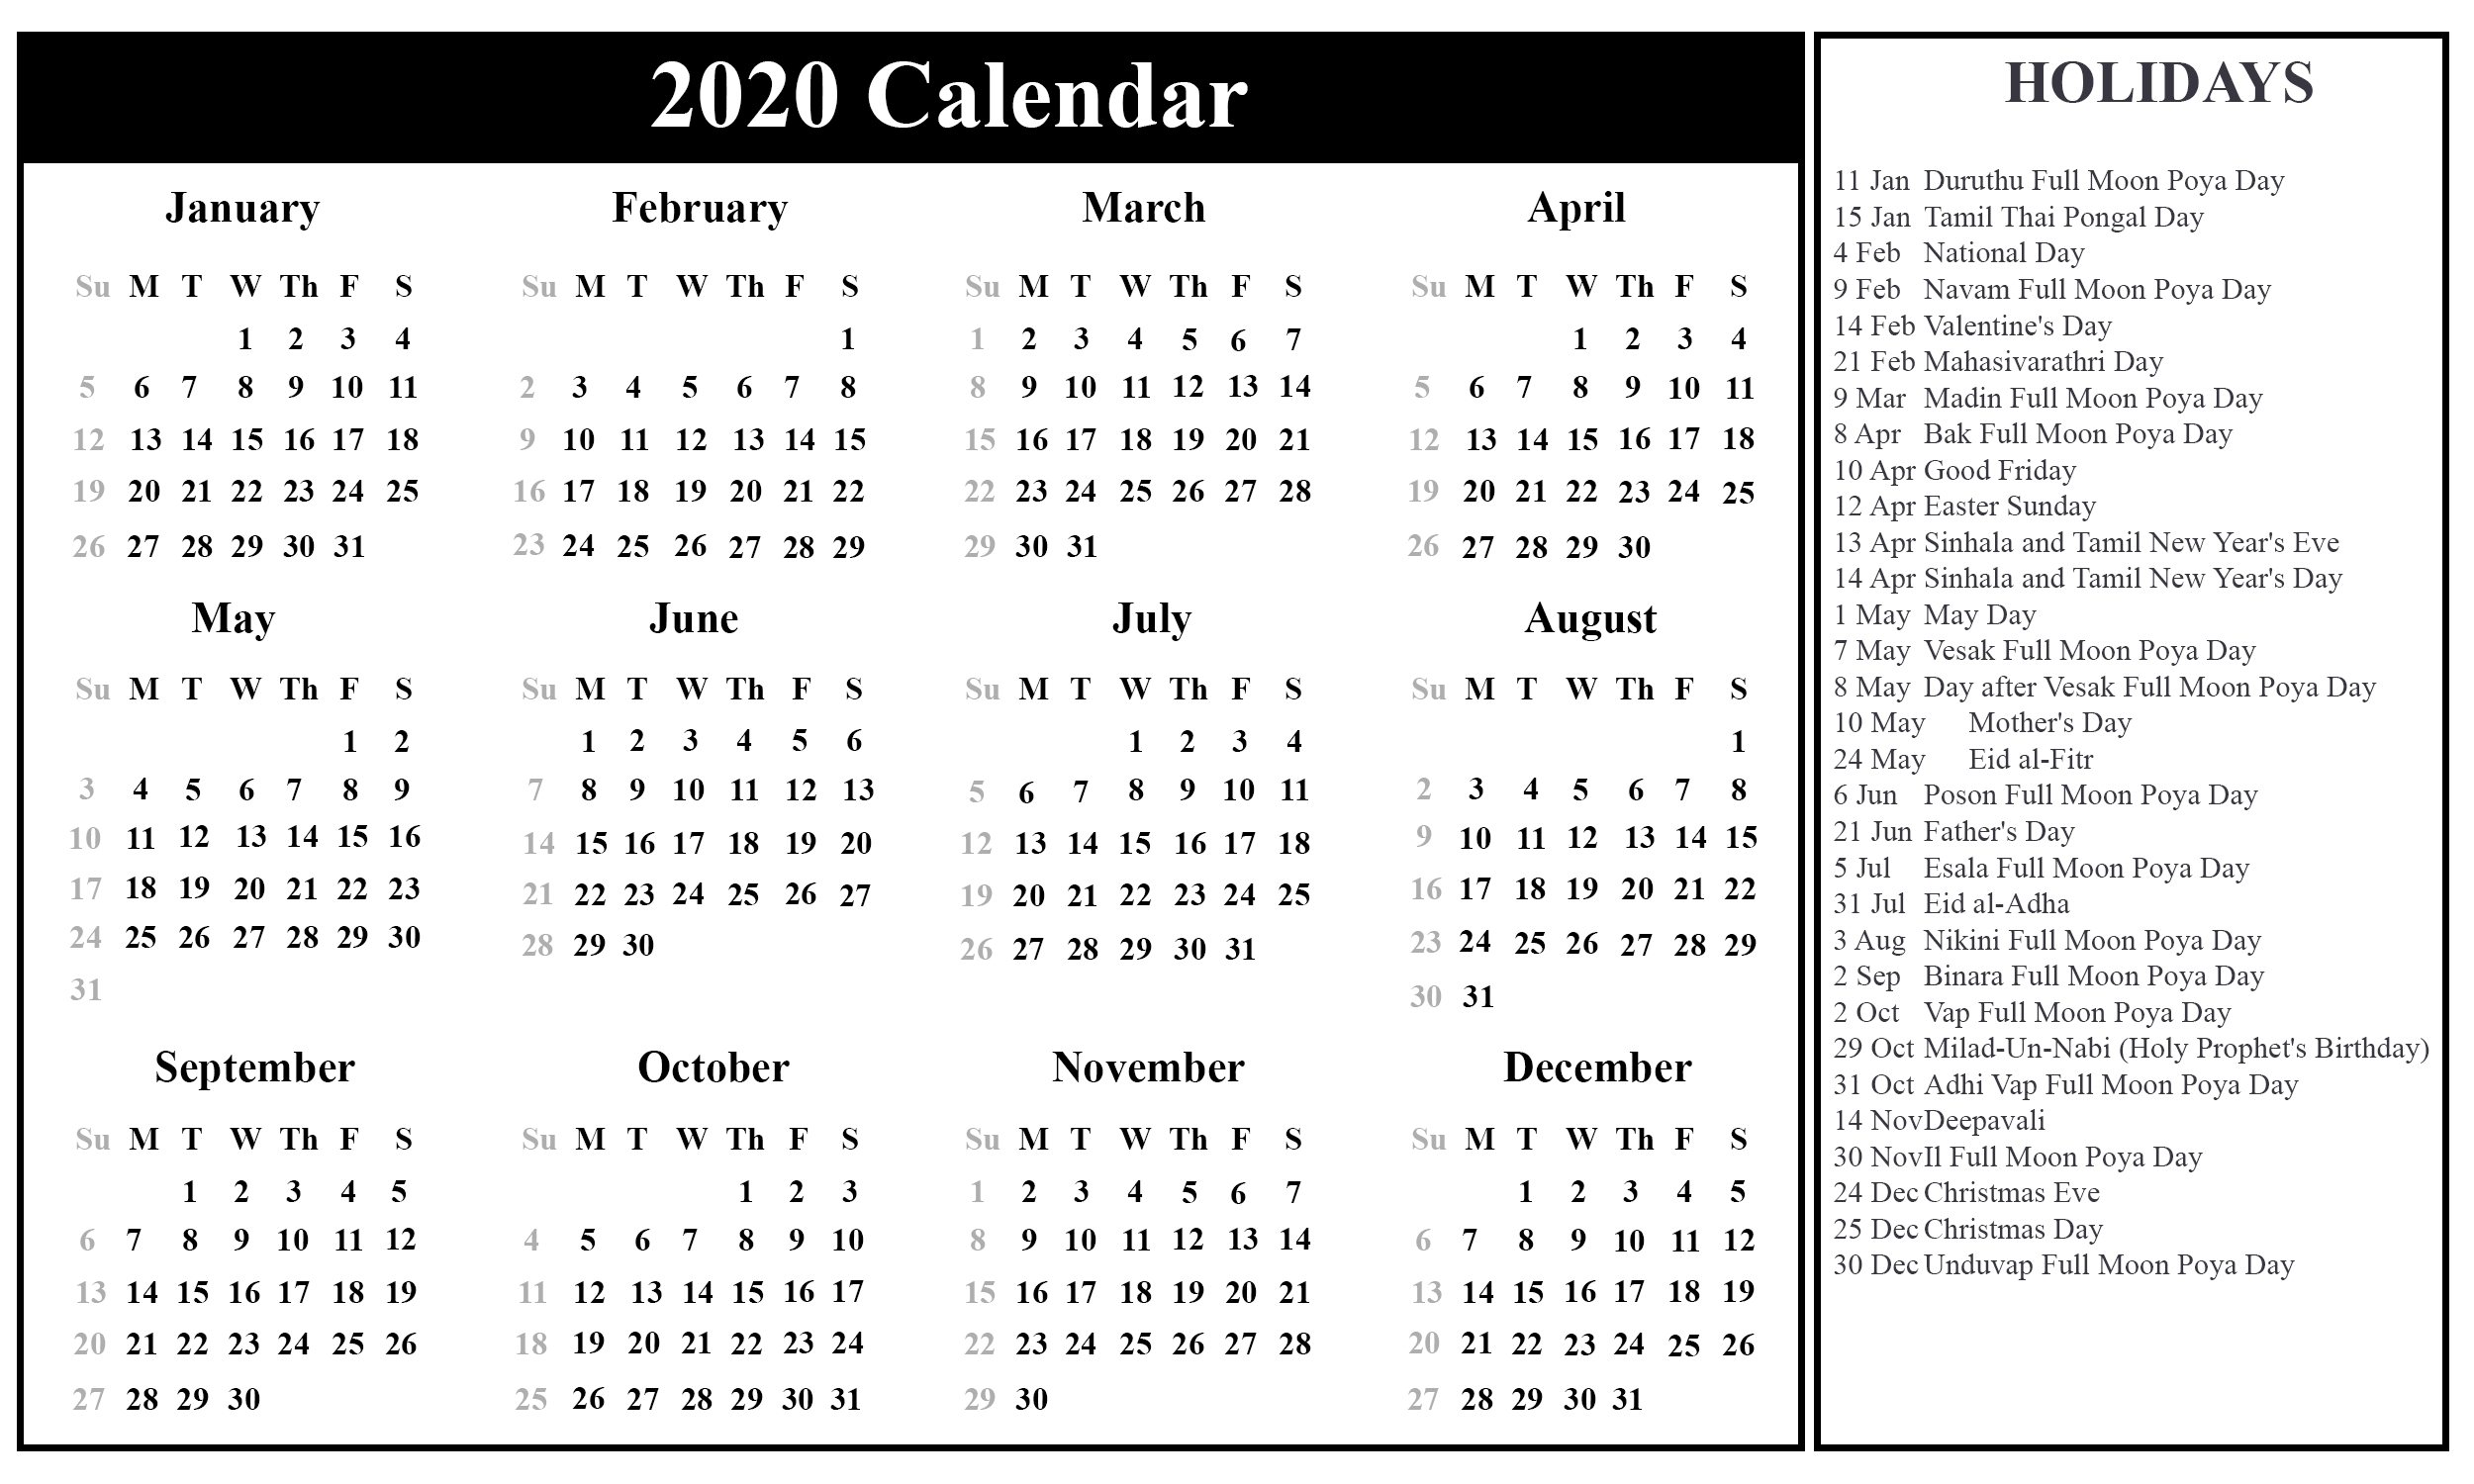 Free Printable Sri Lanka Calendar 2020 With Holidays In Pdf 2020 Calendar With Holidays